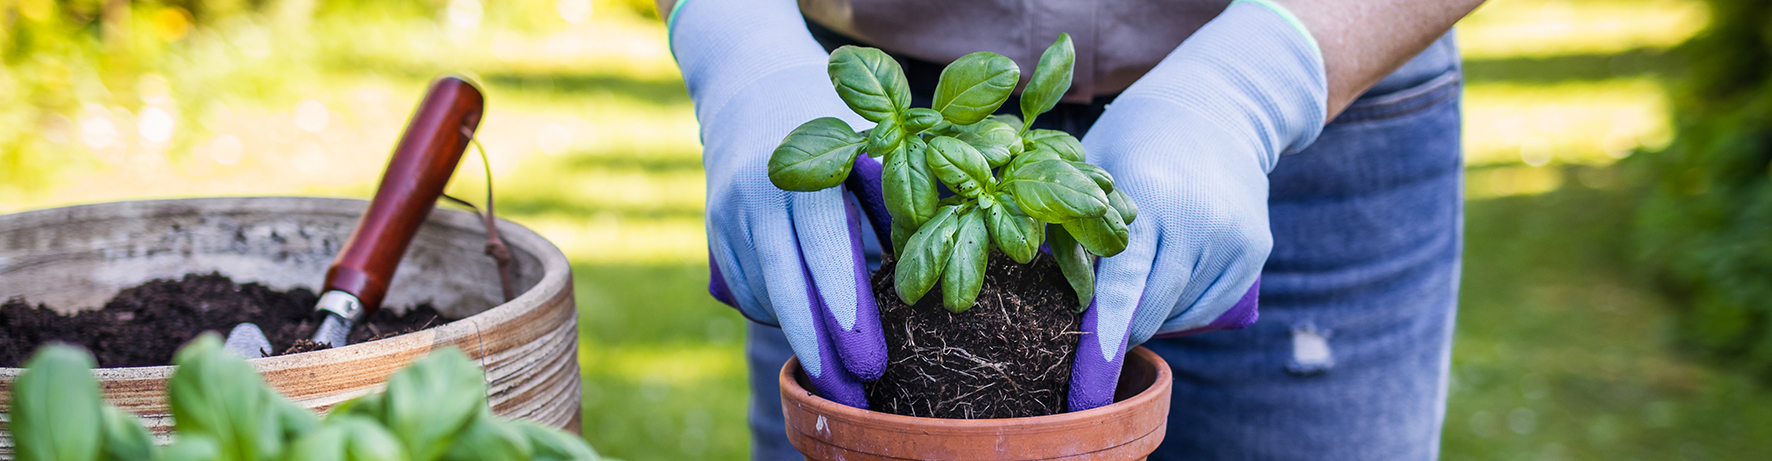 A person planting basil in a terracotta pot outdoors.